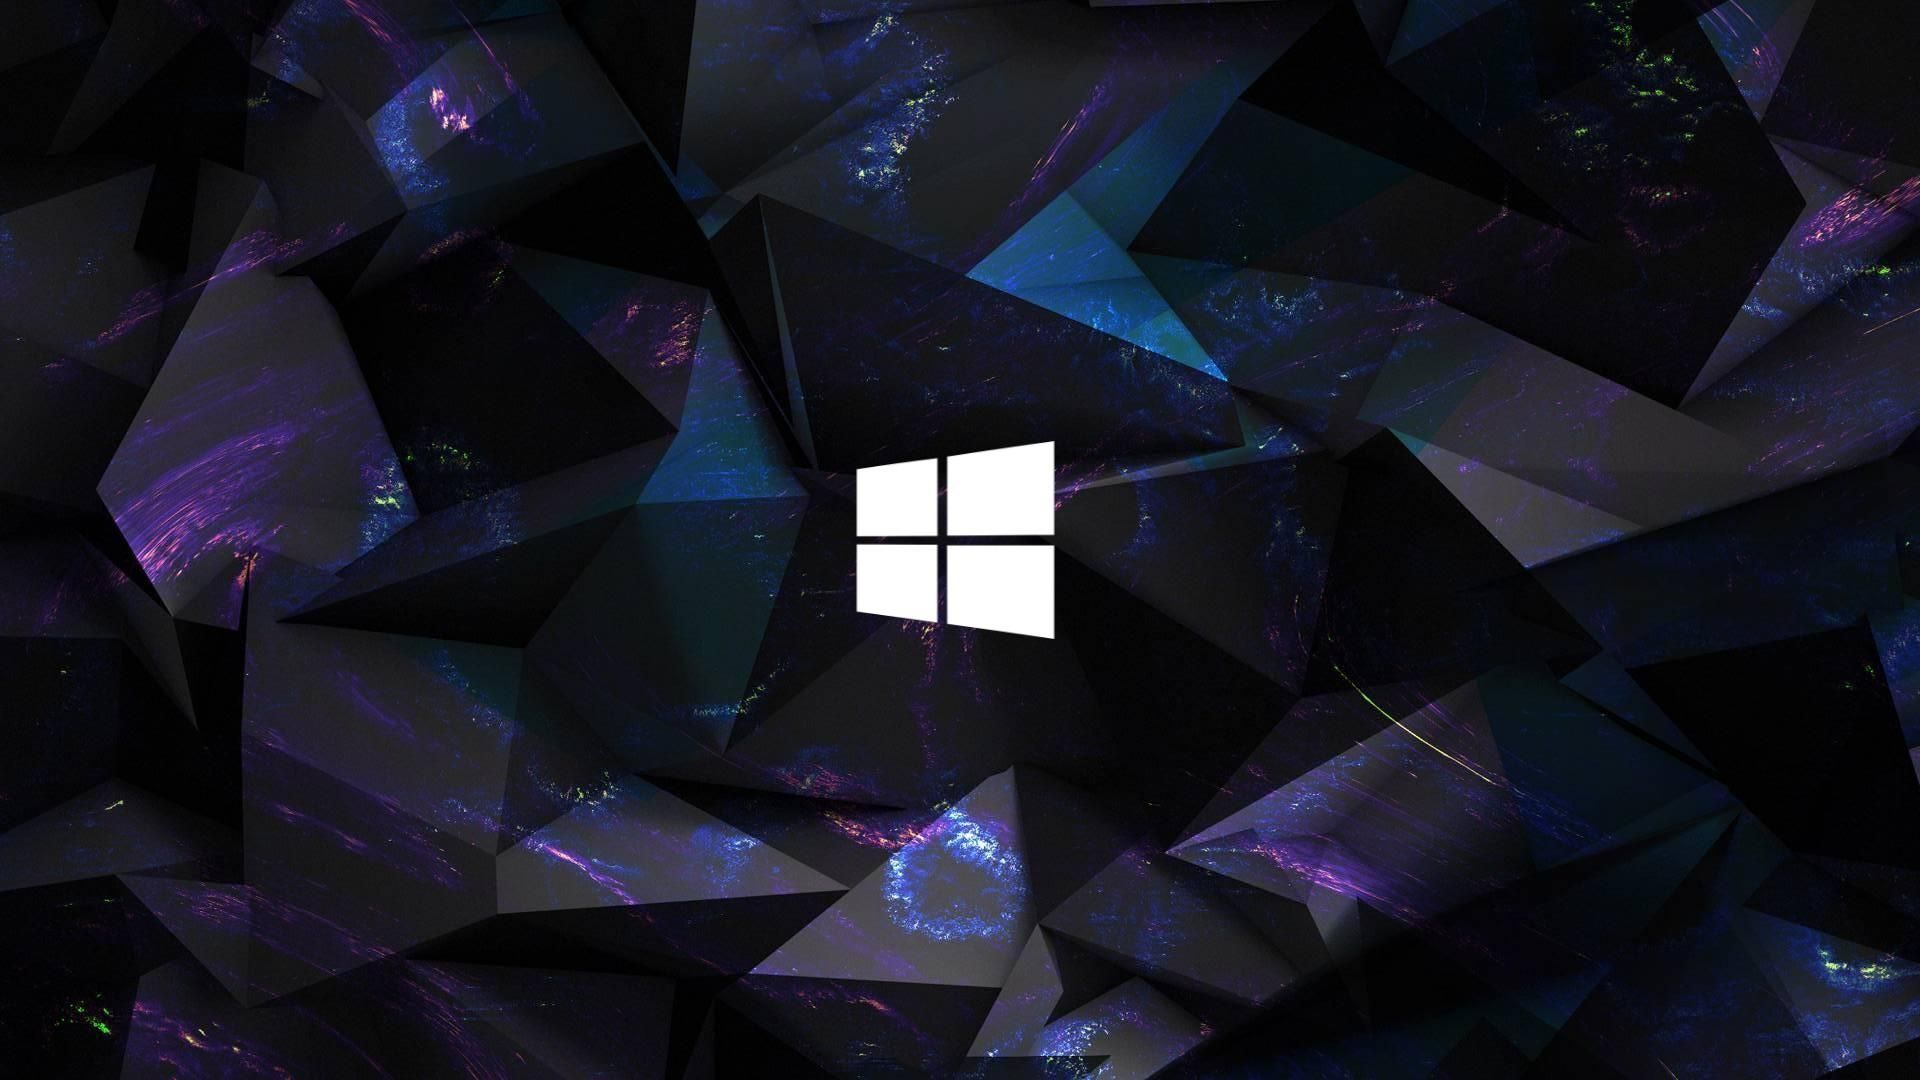 Windows 10 19201080 Wallpaper Windows 10 Windows Wallpaper Microsoft Wallpaper